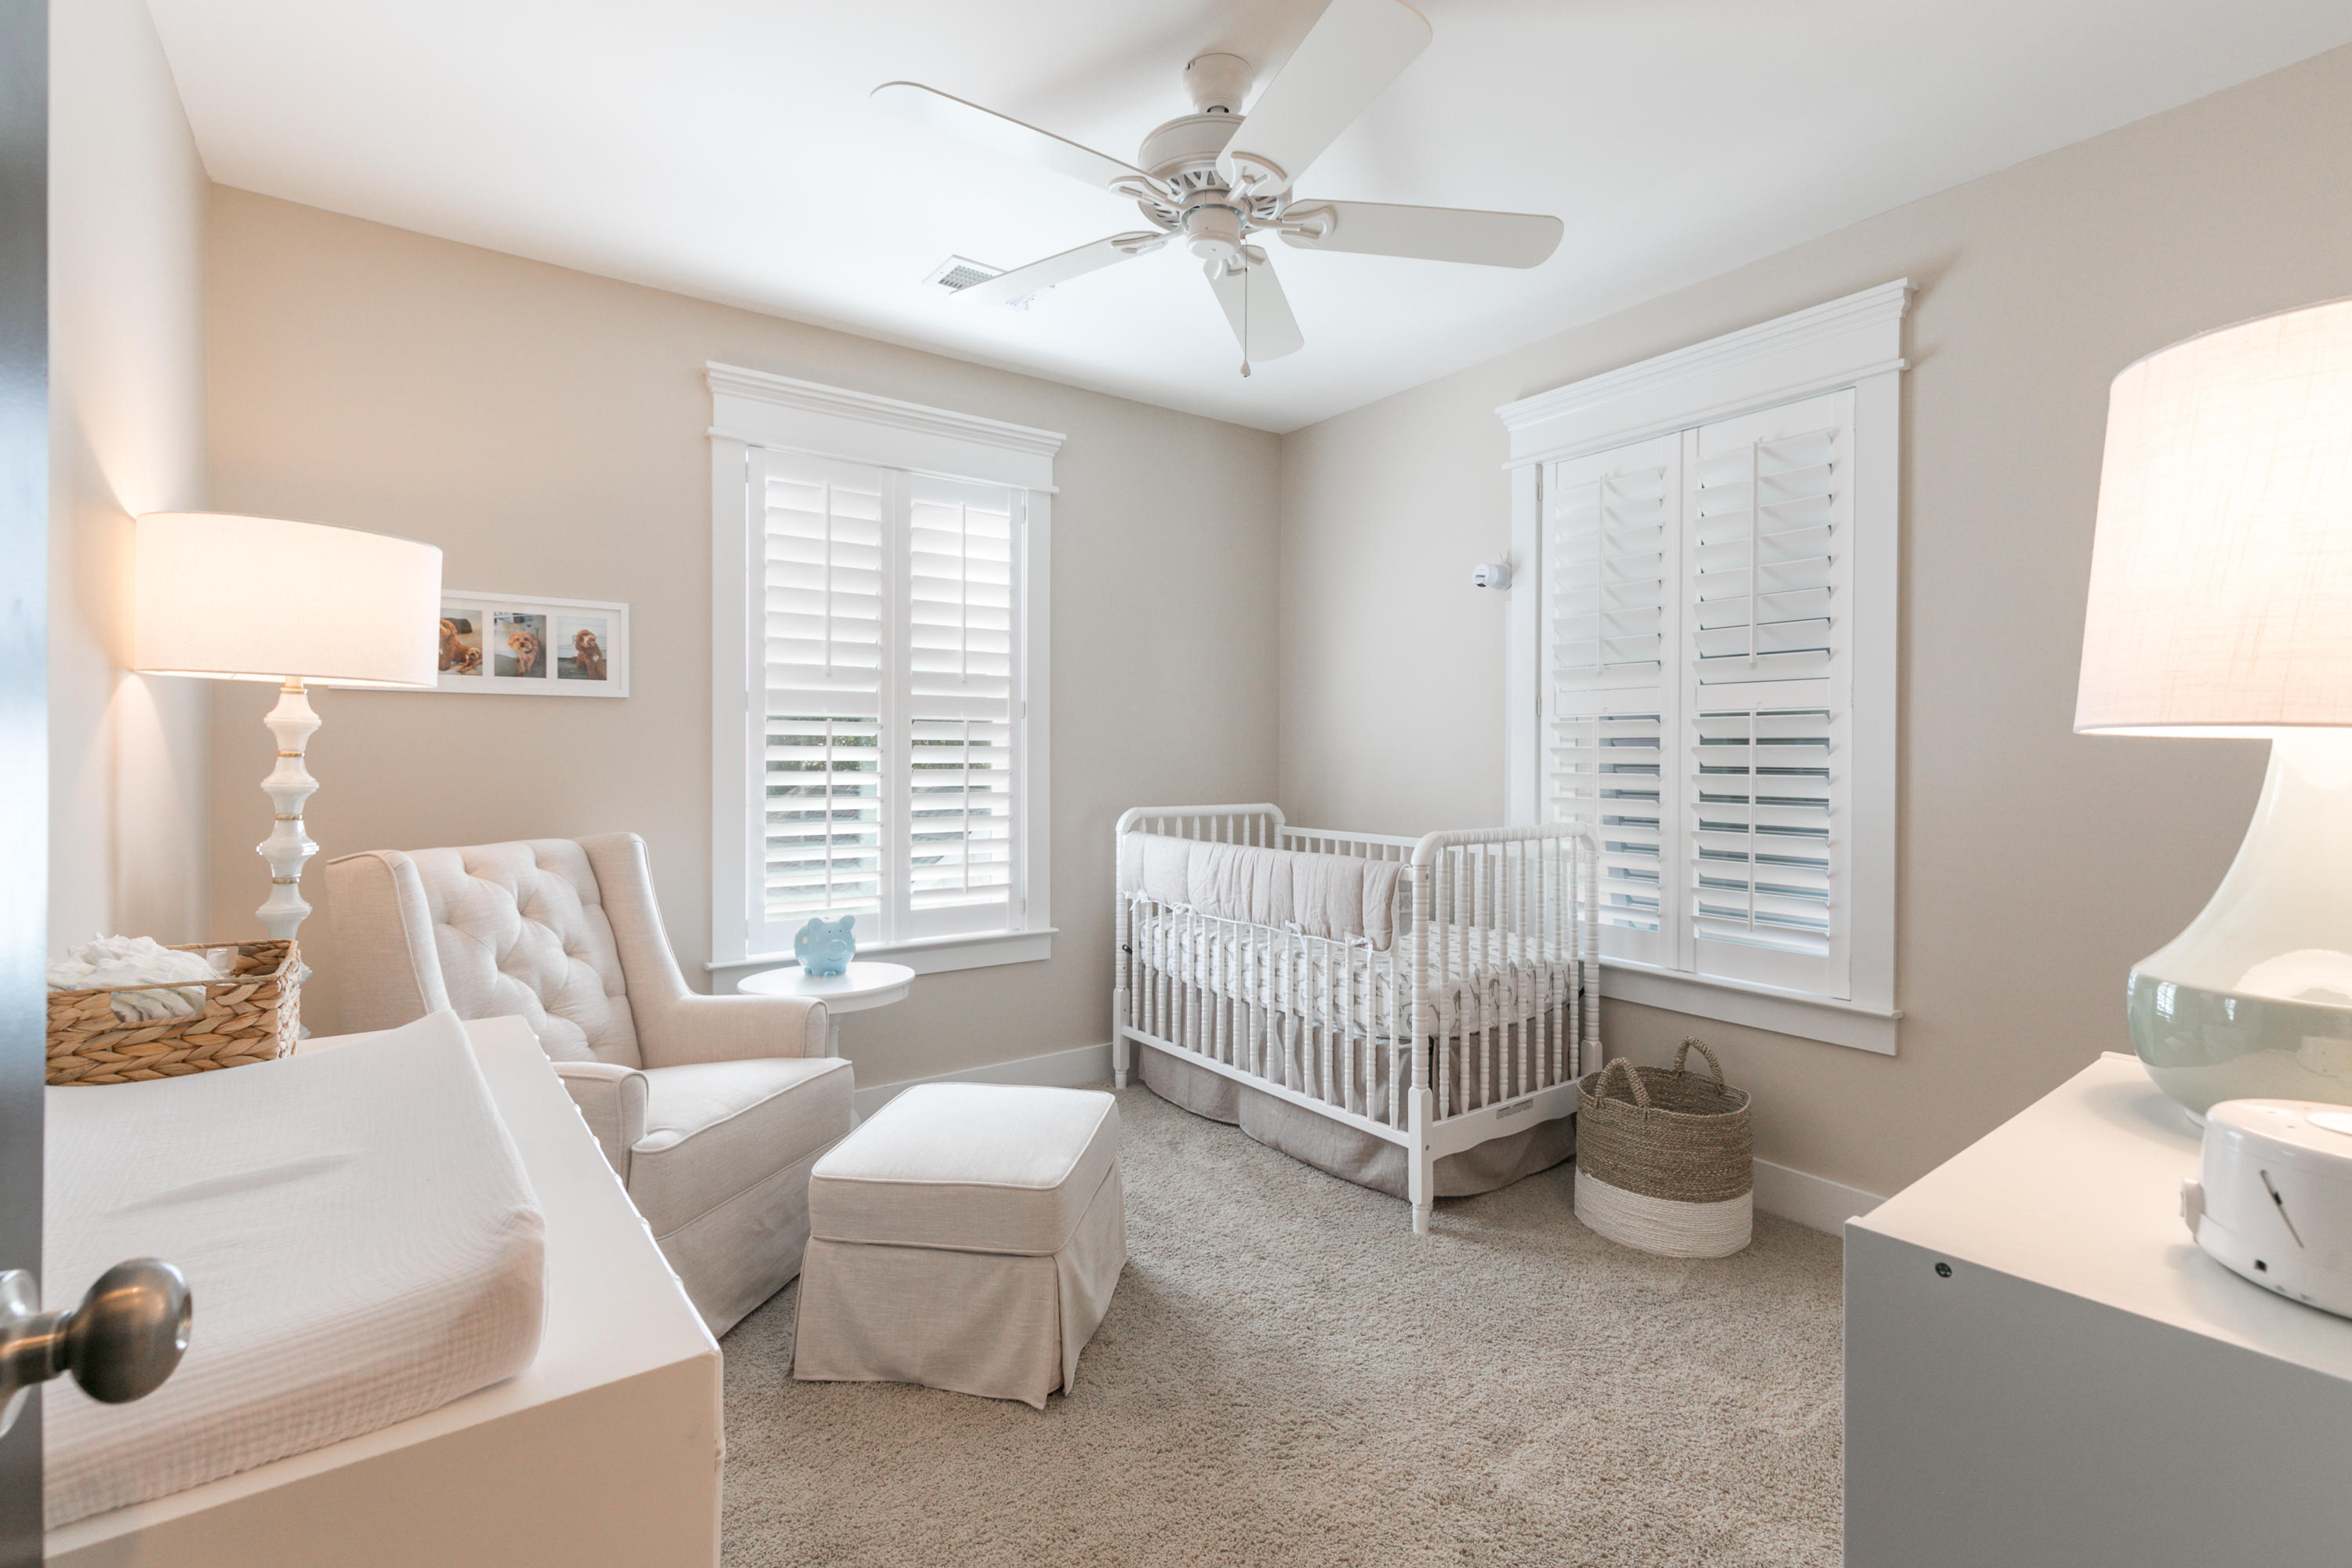 Wexford Park Homes For Sale - 1133 Wexford, Mount Pleasant, SC - 20